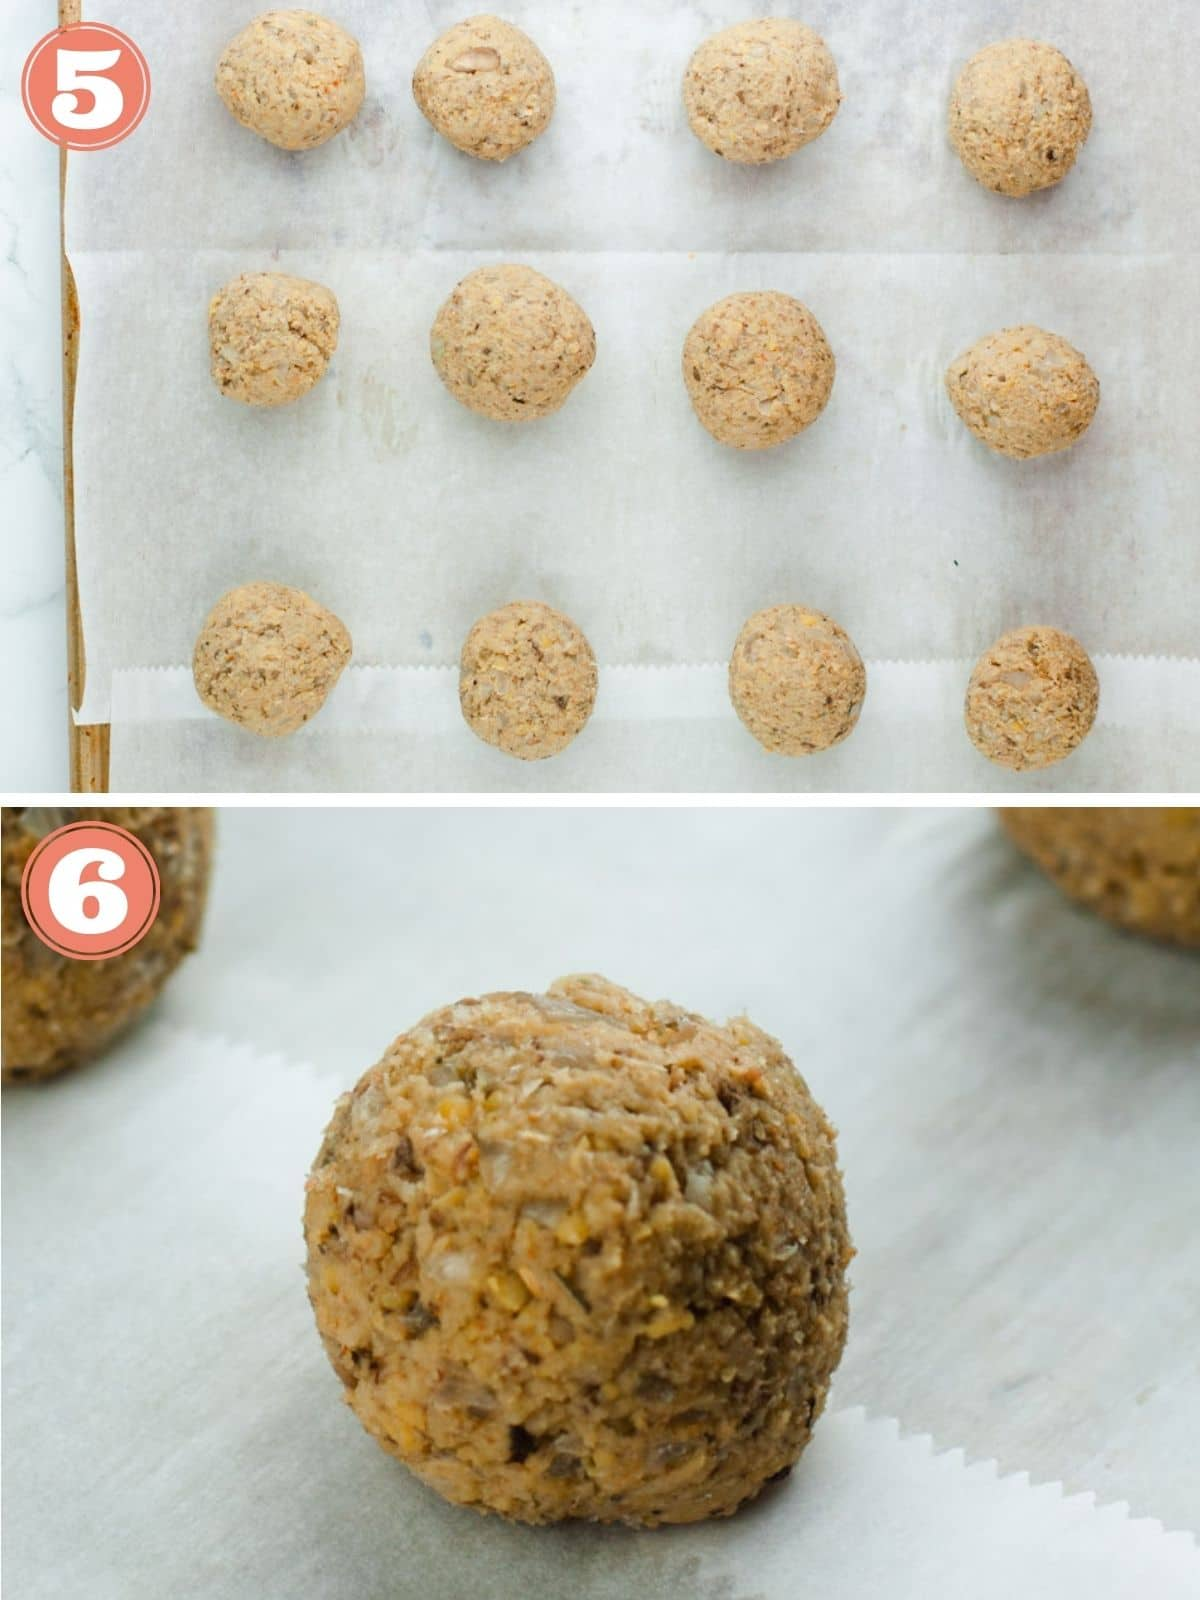 Steps 5 and 6 to bake meatballs